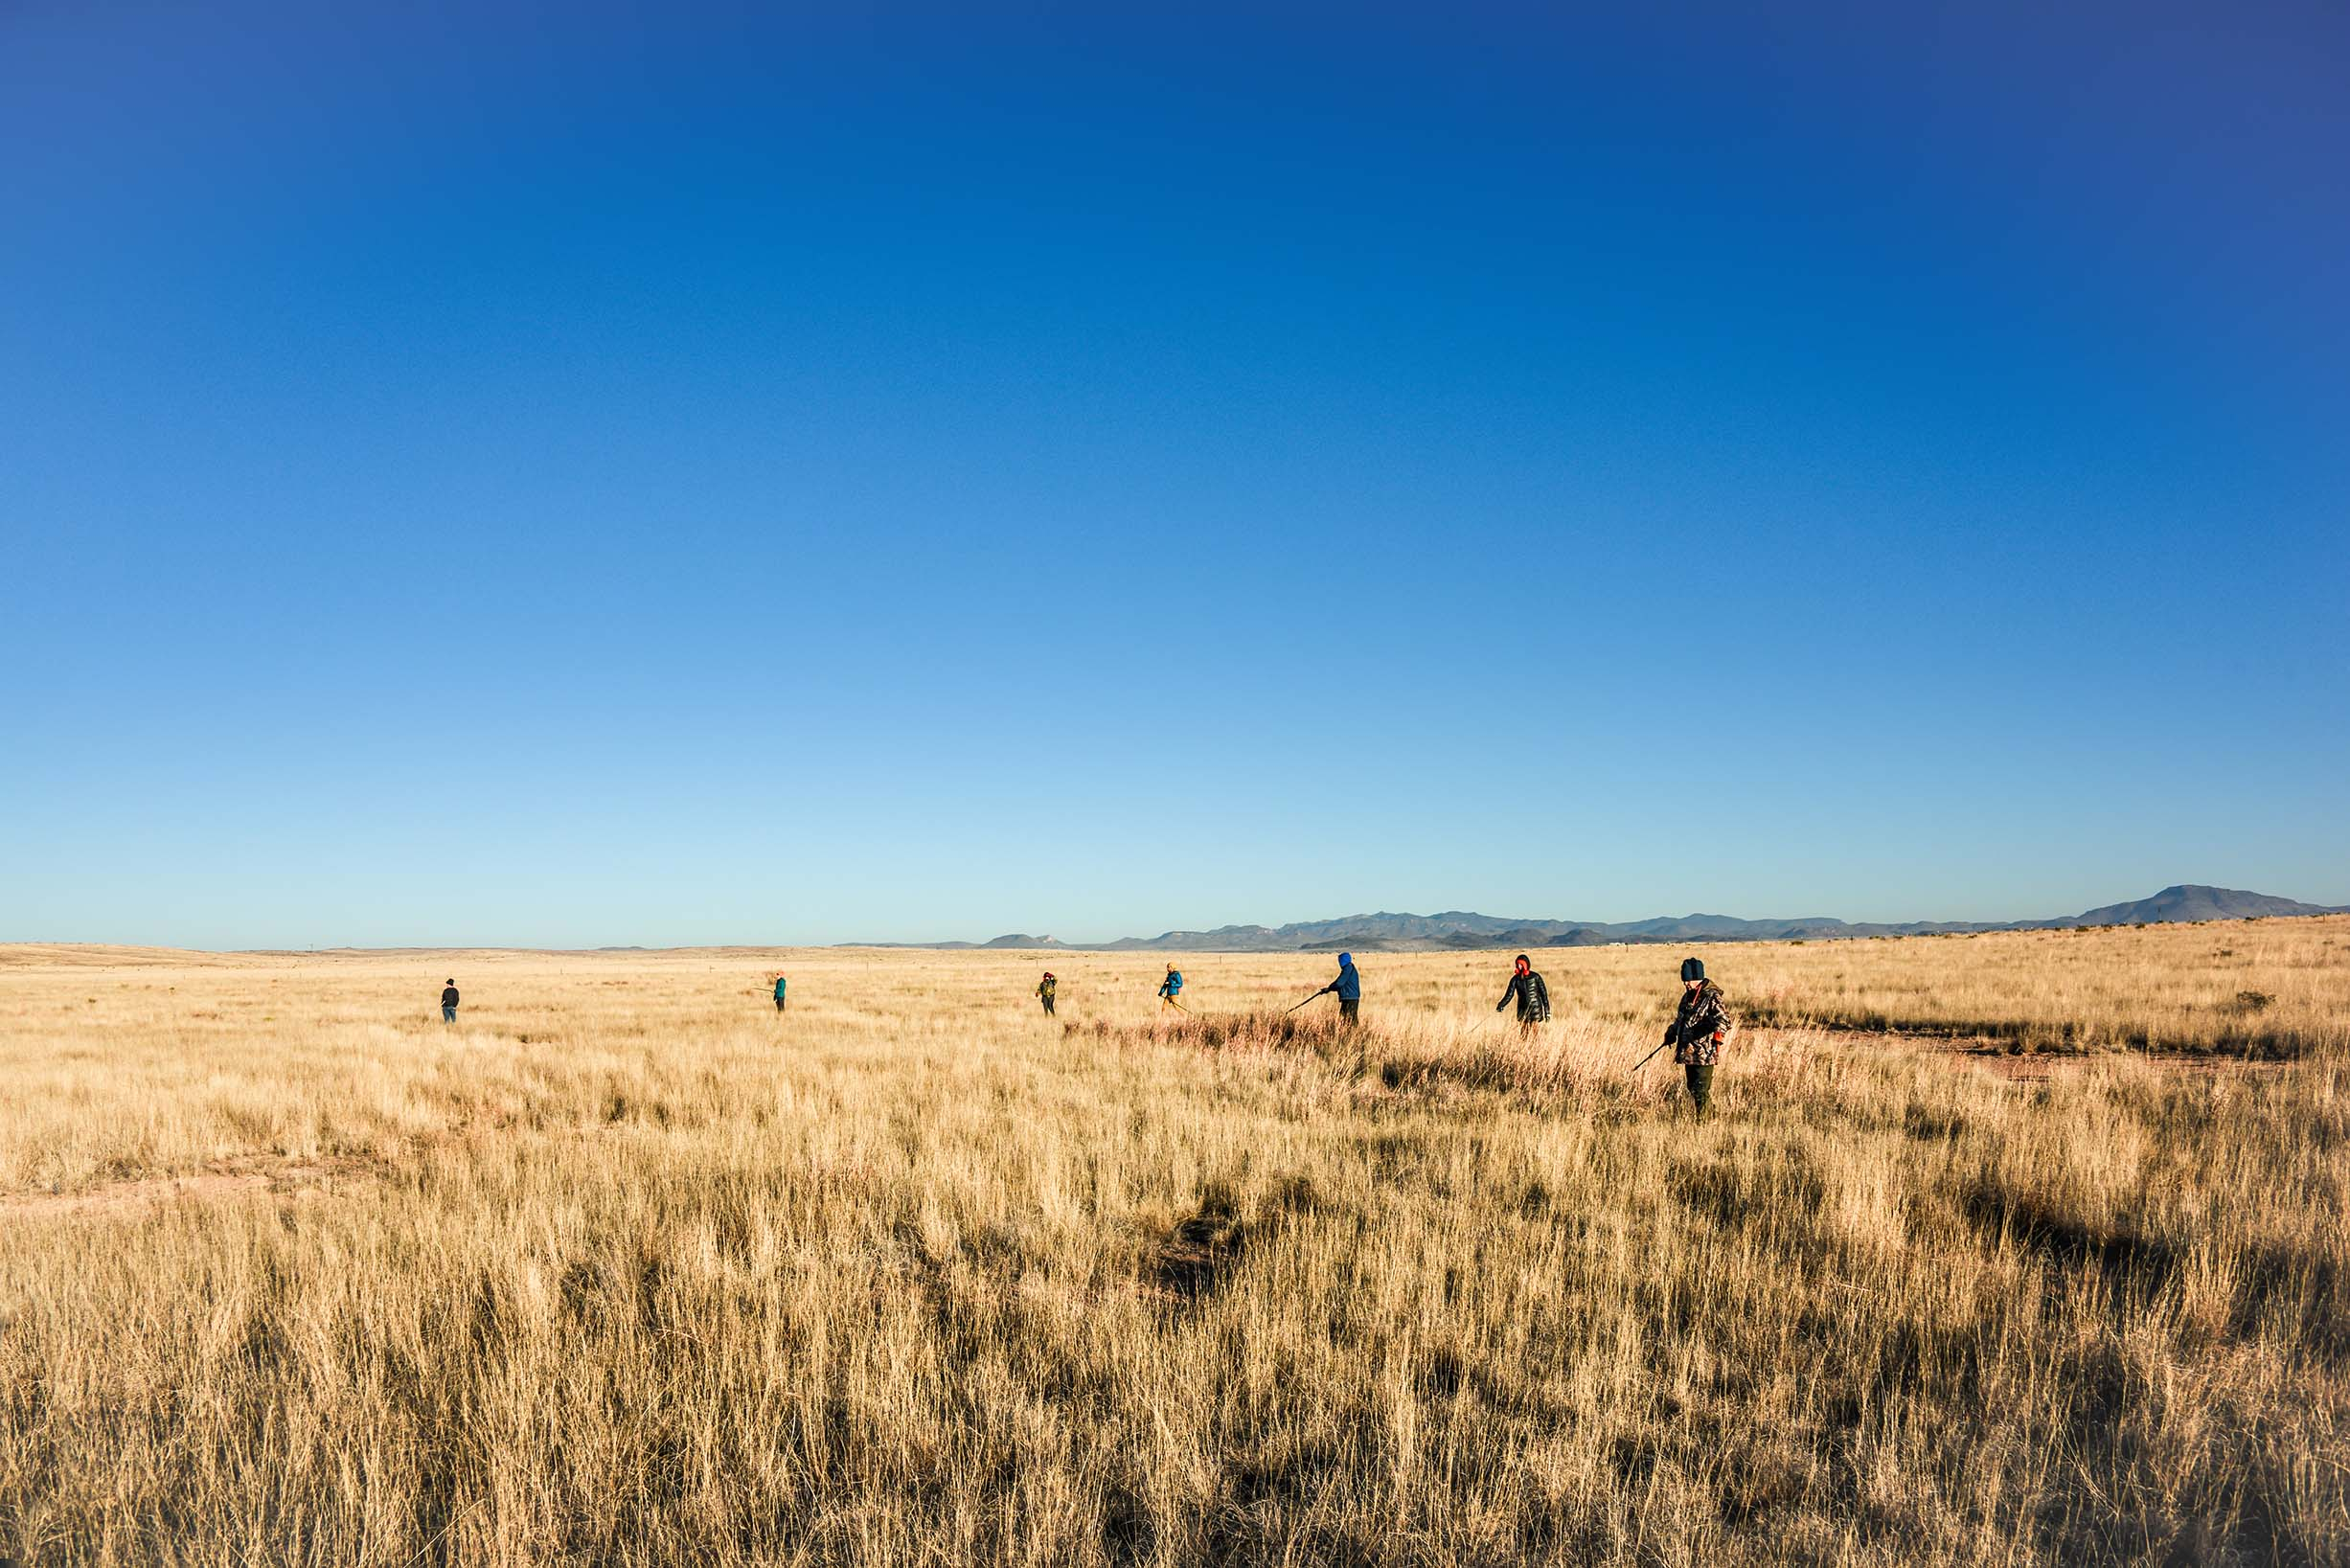 grassland-bird-research-at-mimms-unit-ranch_32019592577_o_resized